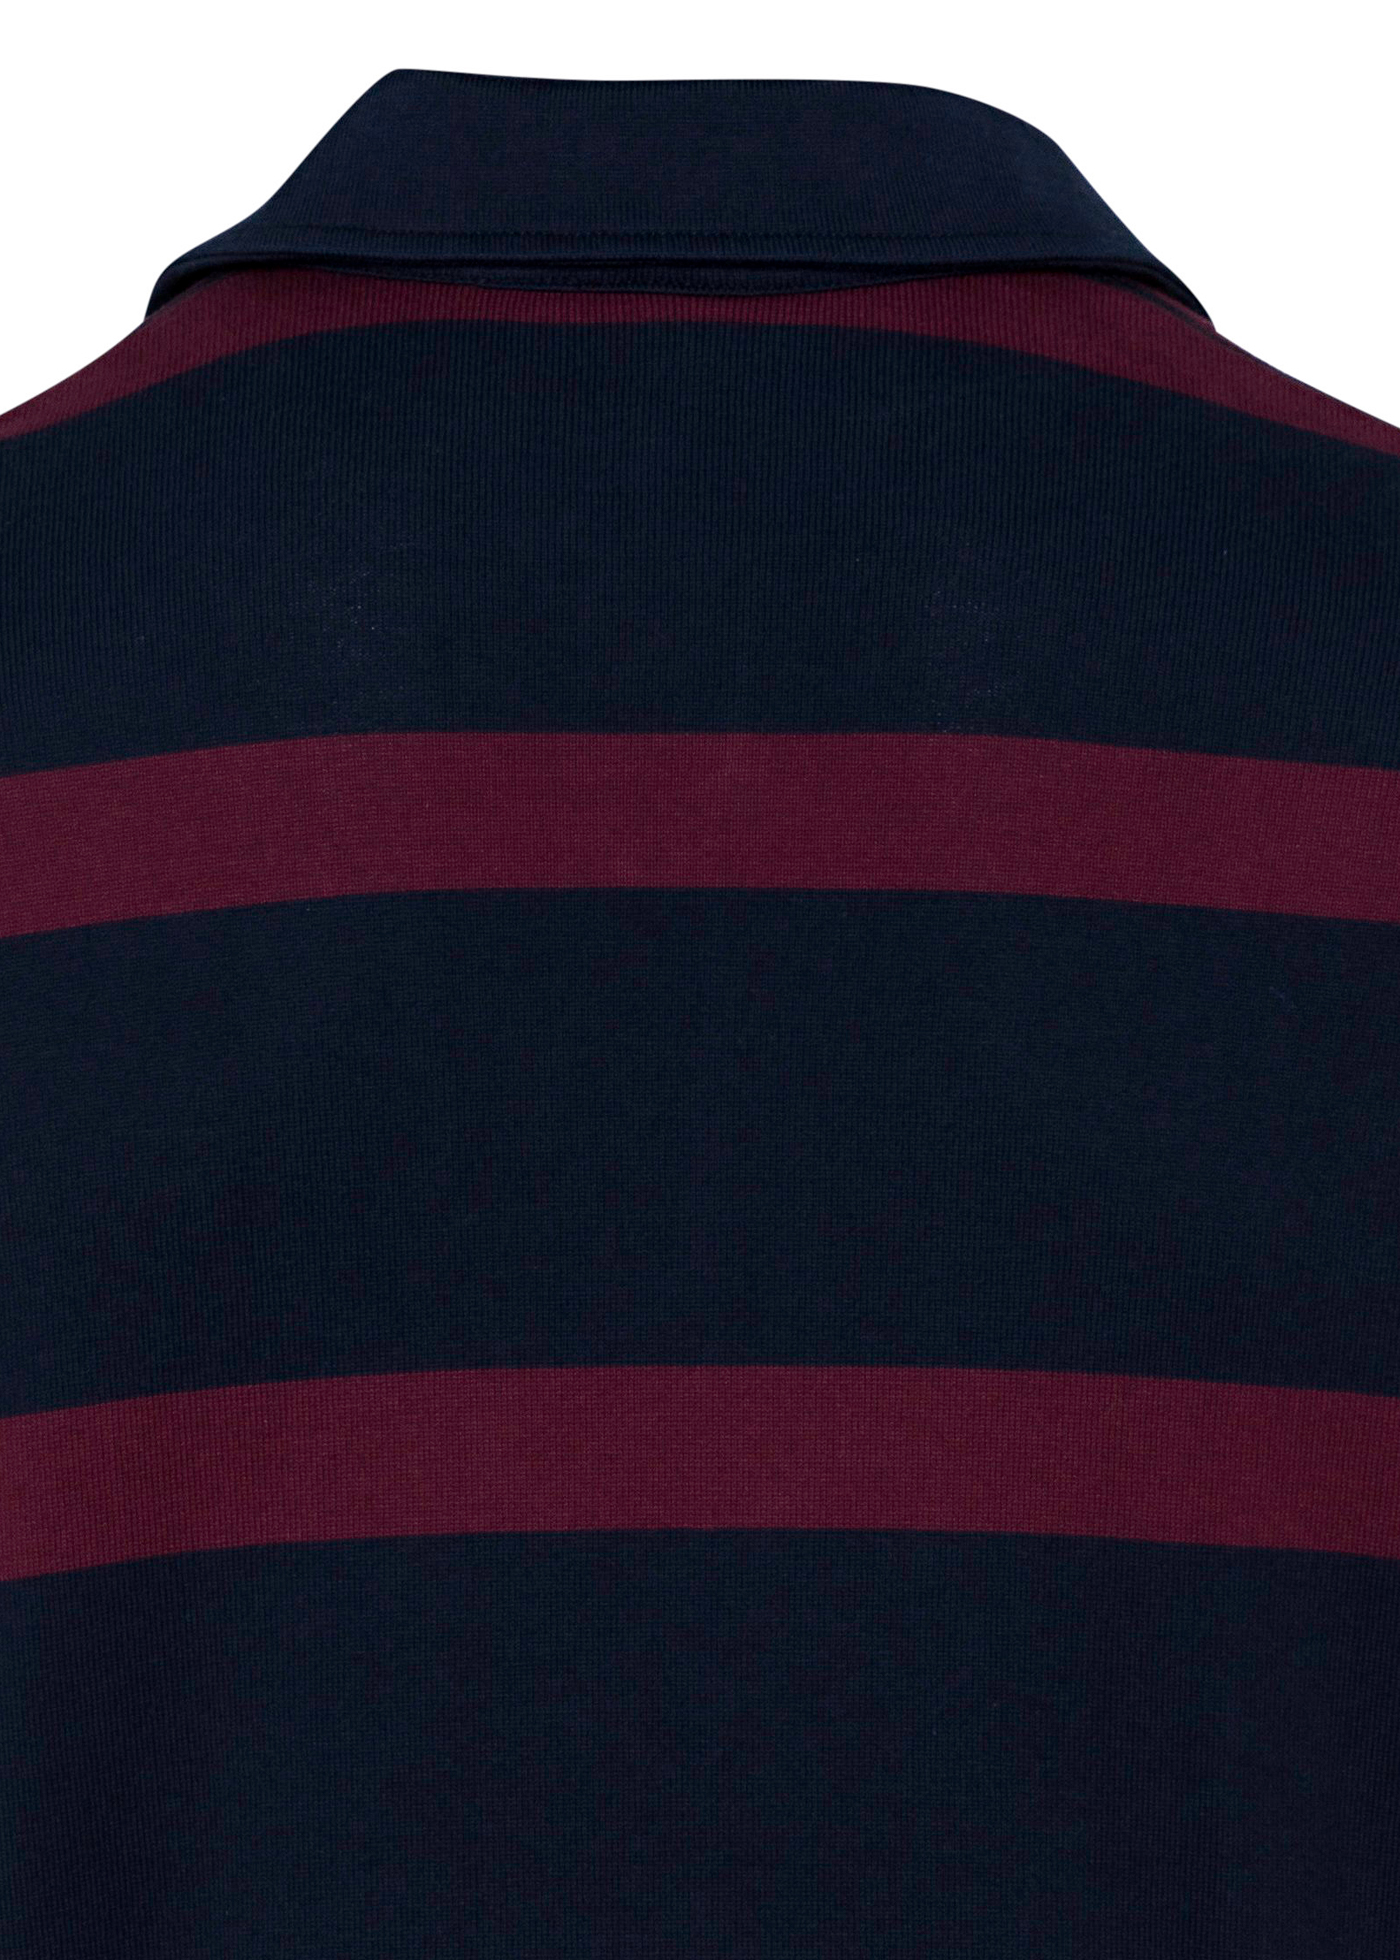 MEN'S KNITTED POLOSHIRT C.W. COTTON image number 3